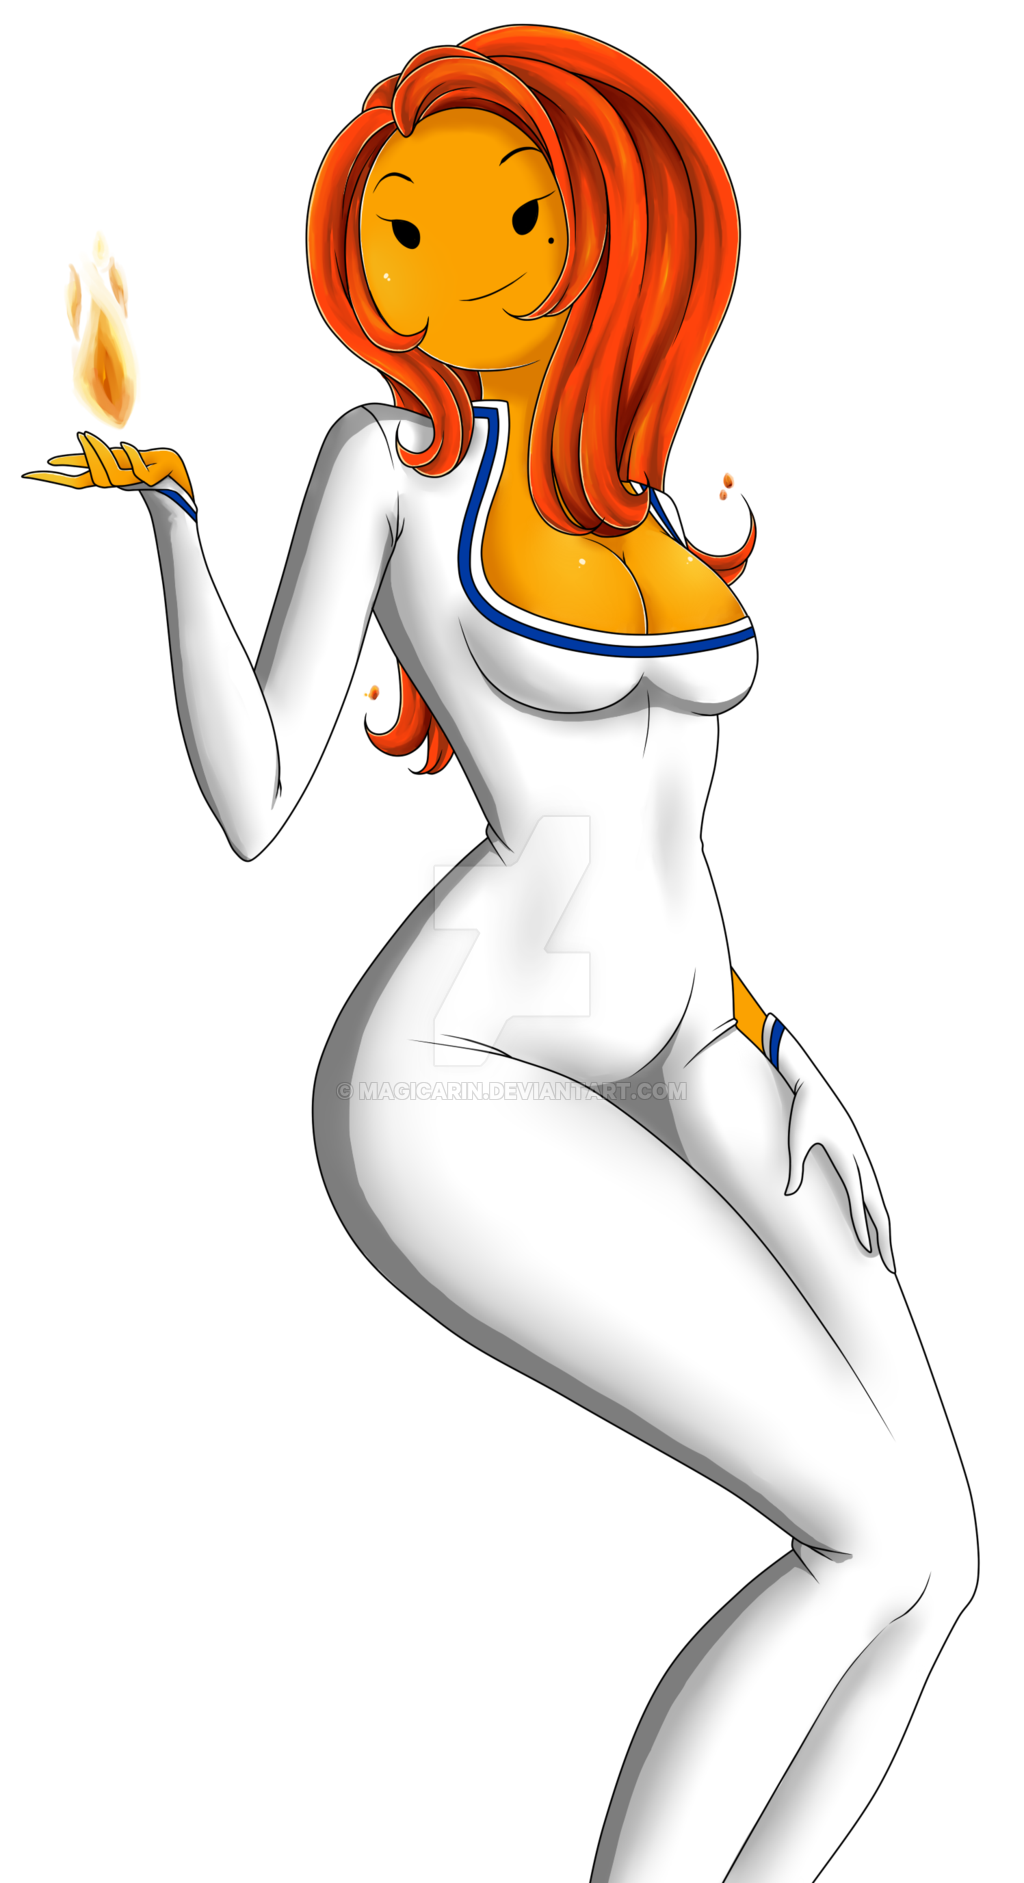 Flame Queen clipart #3, Download drawings